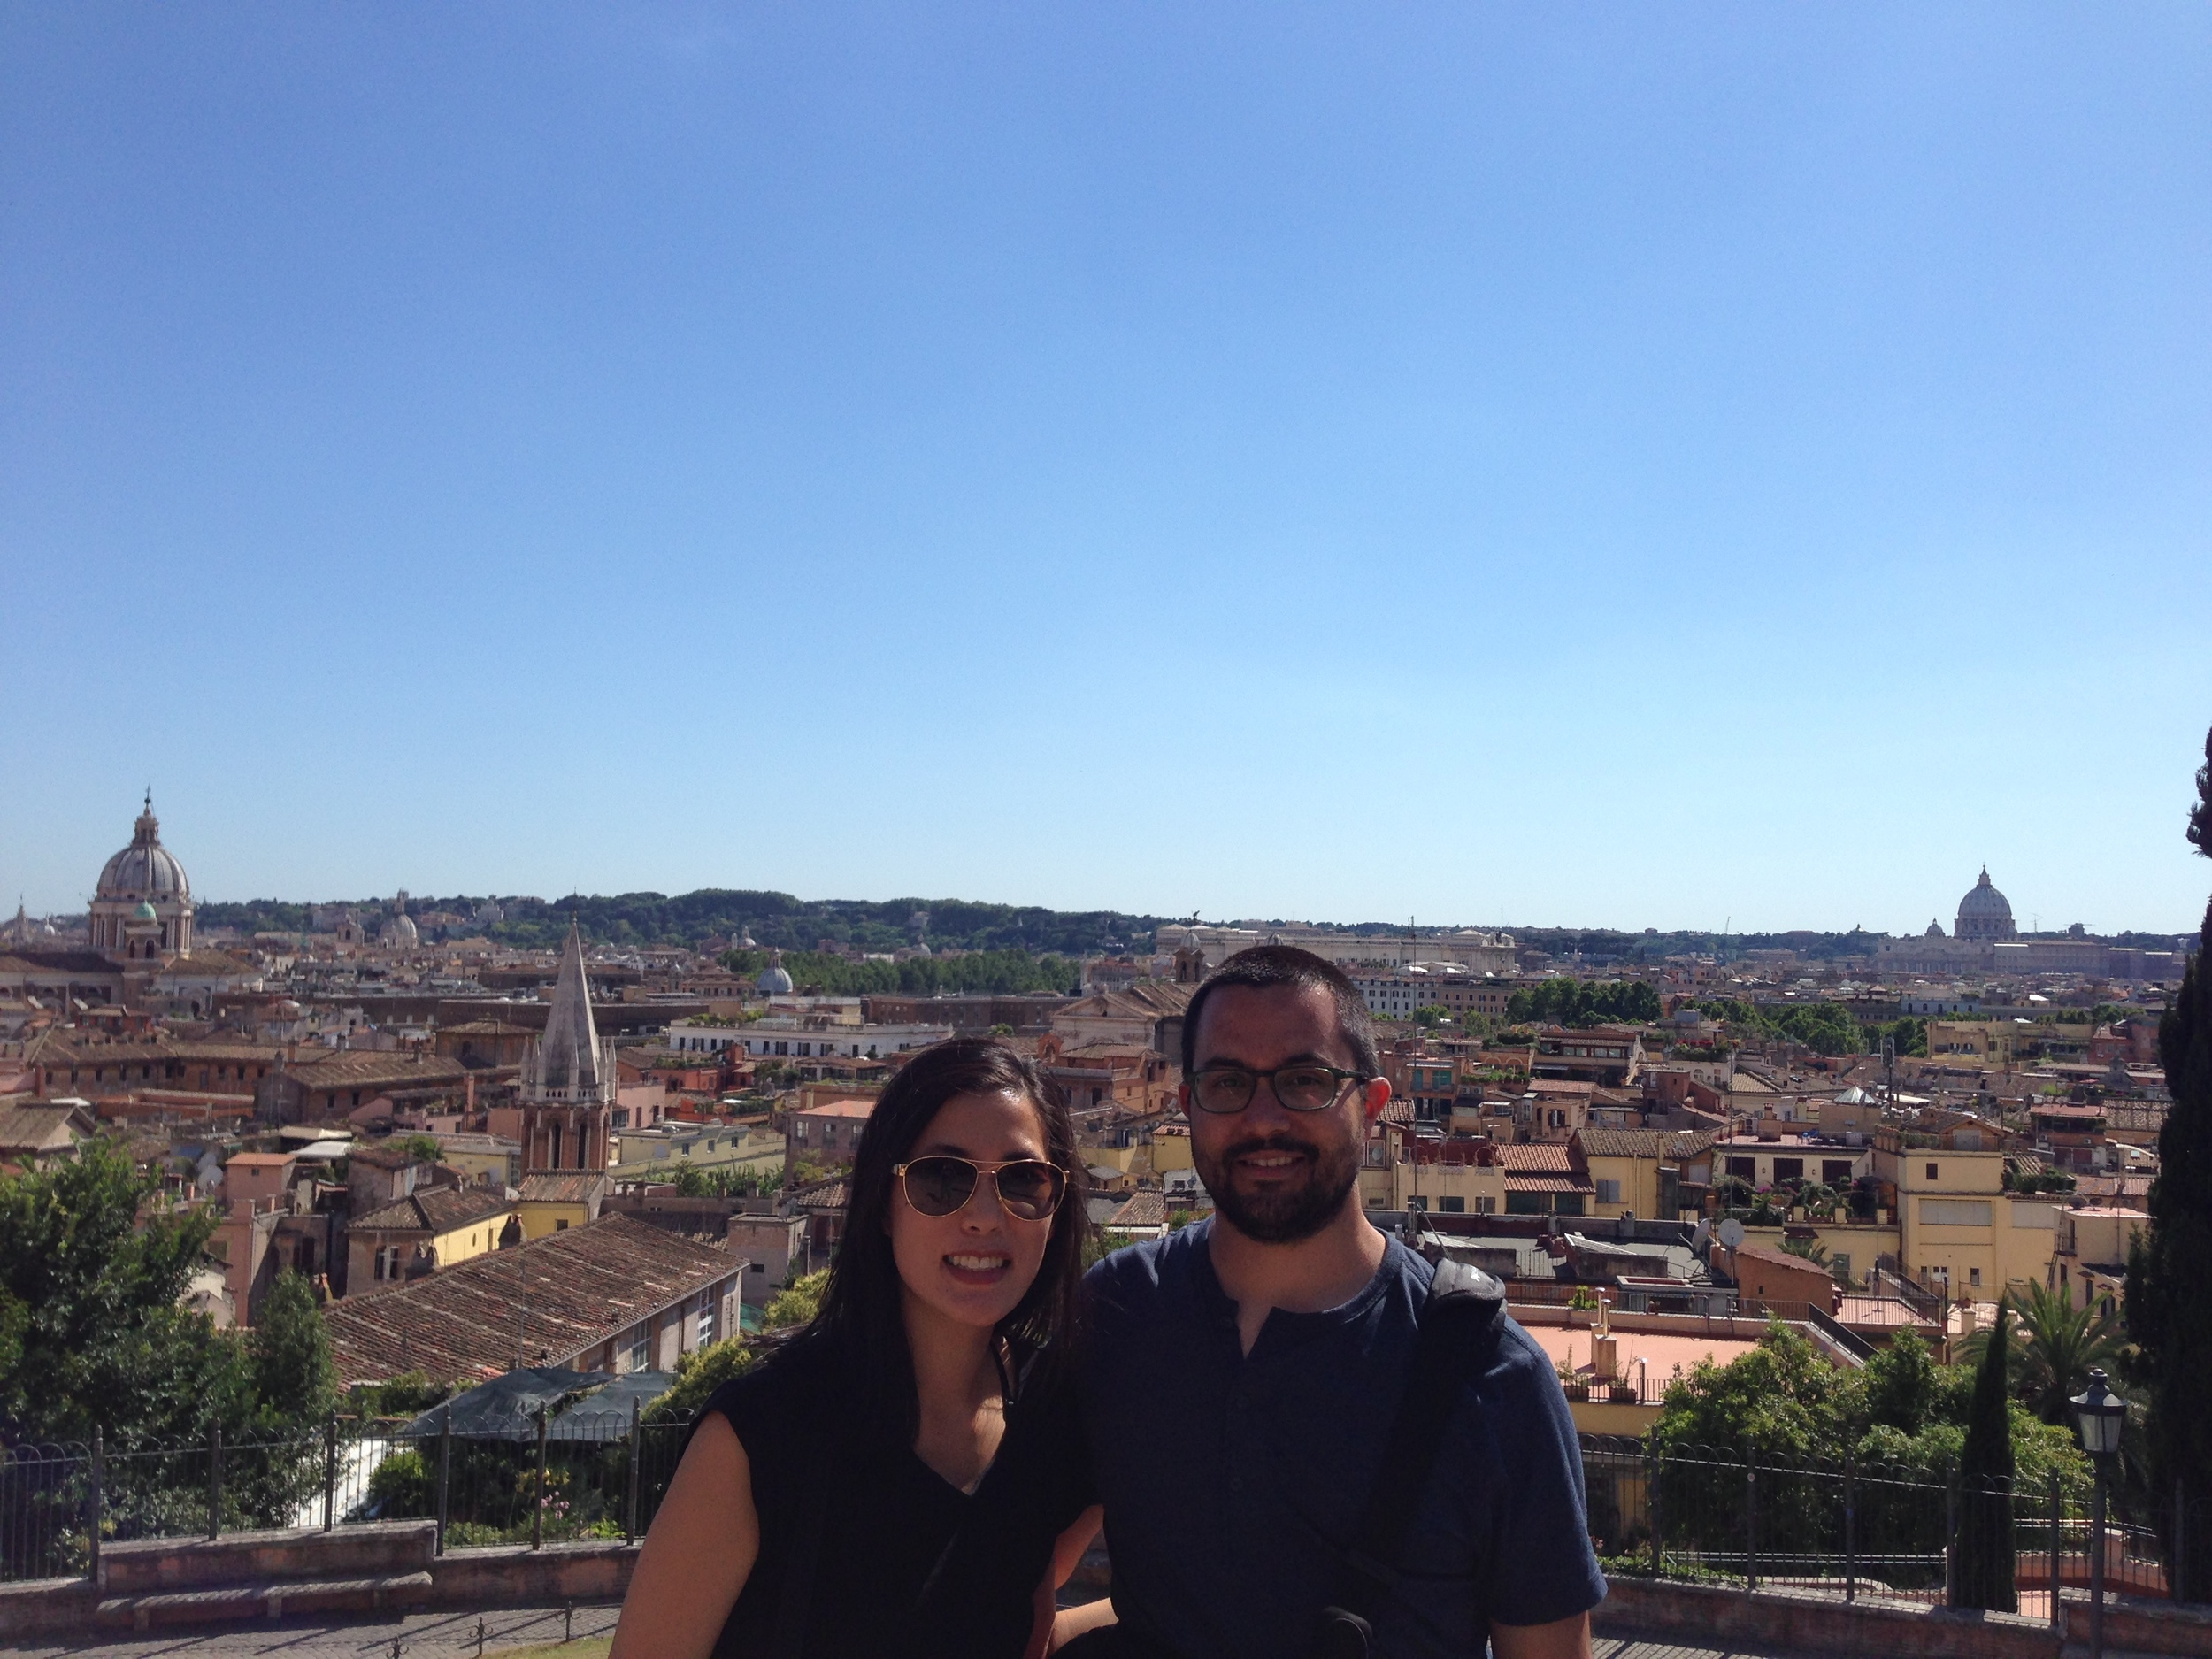 Overlooking the city from the Borghese Gardens.